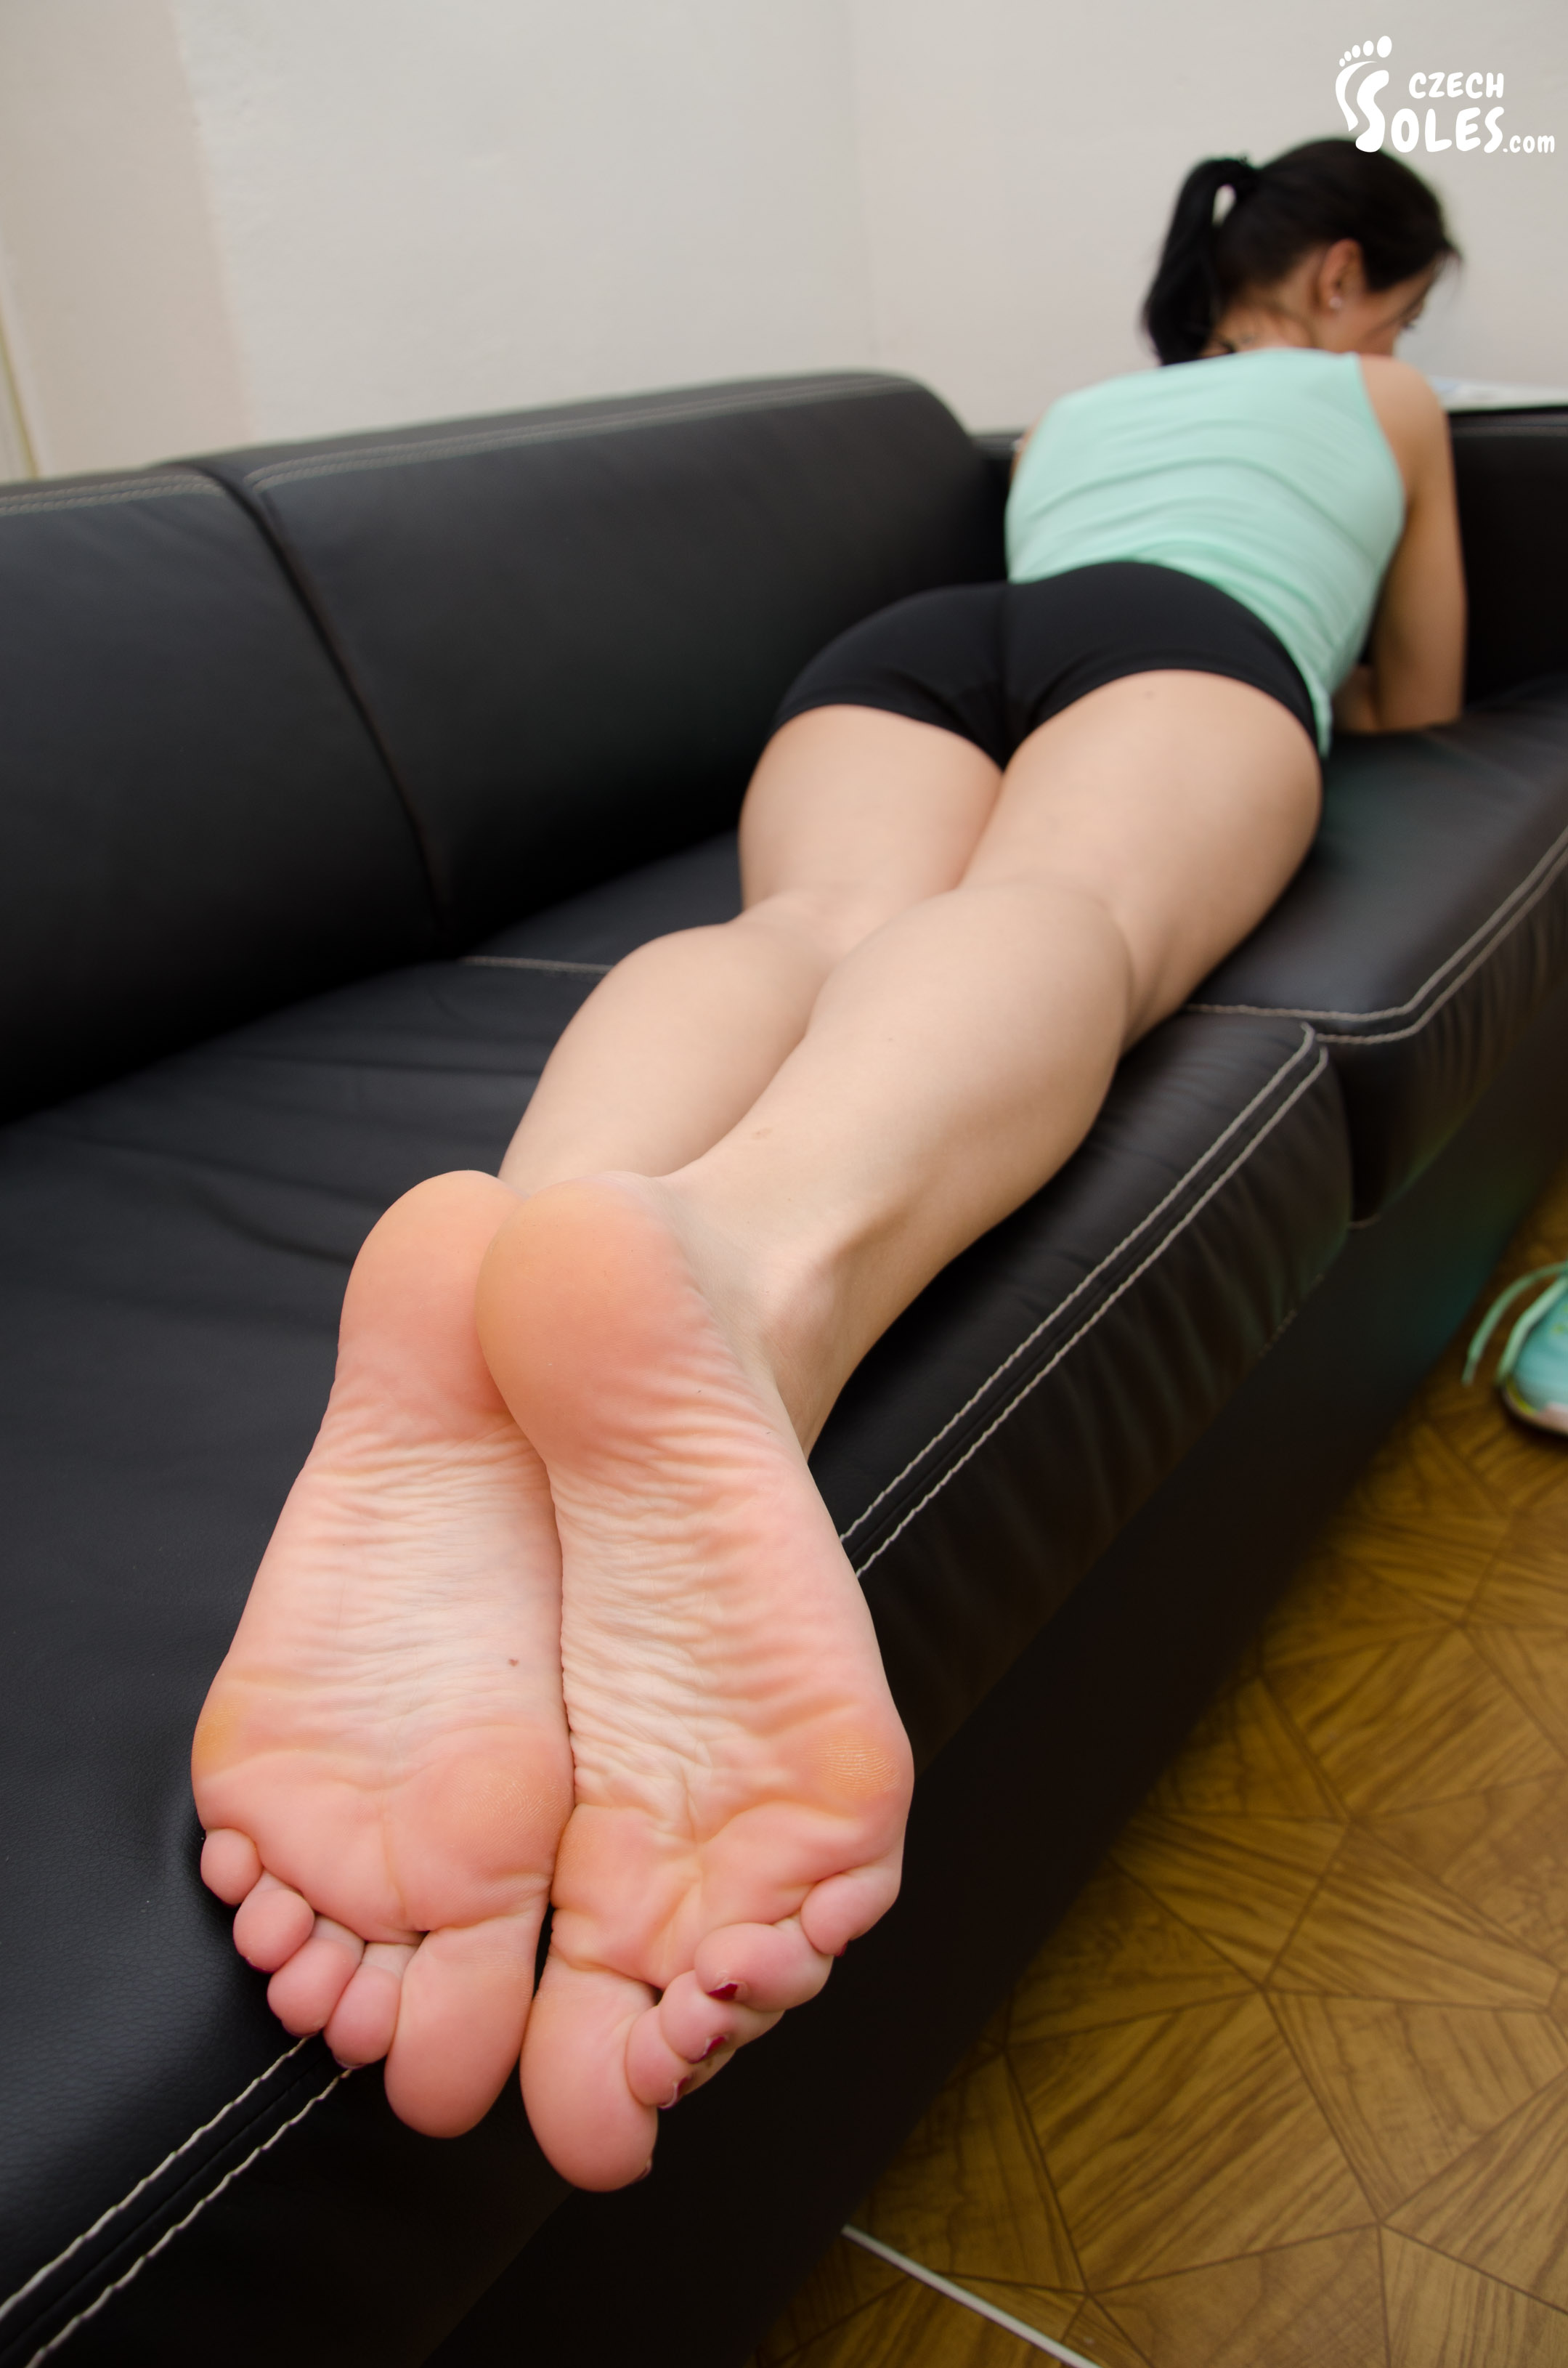 Czech Soles - Great Foot Fetish Site-2553